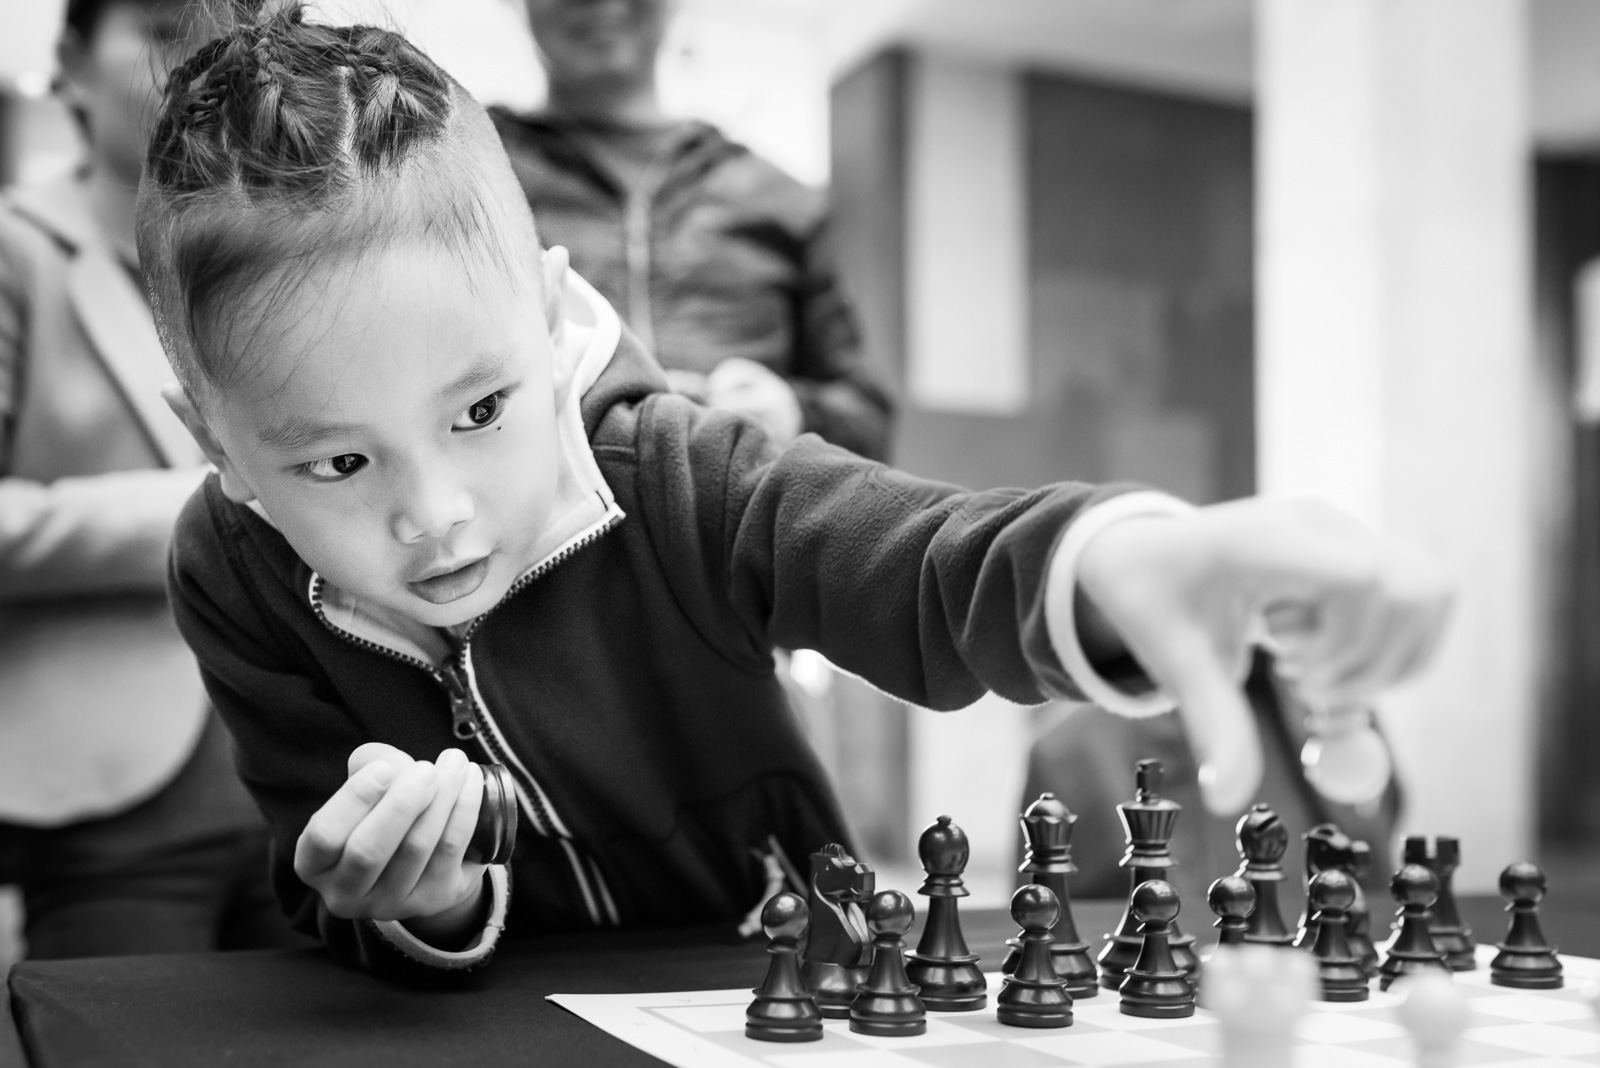 girl reaches across chess board